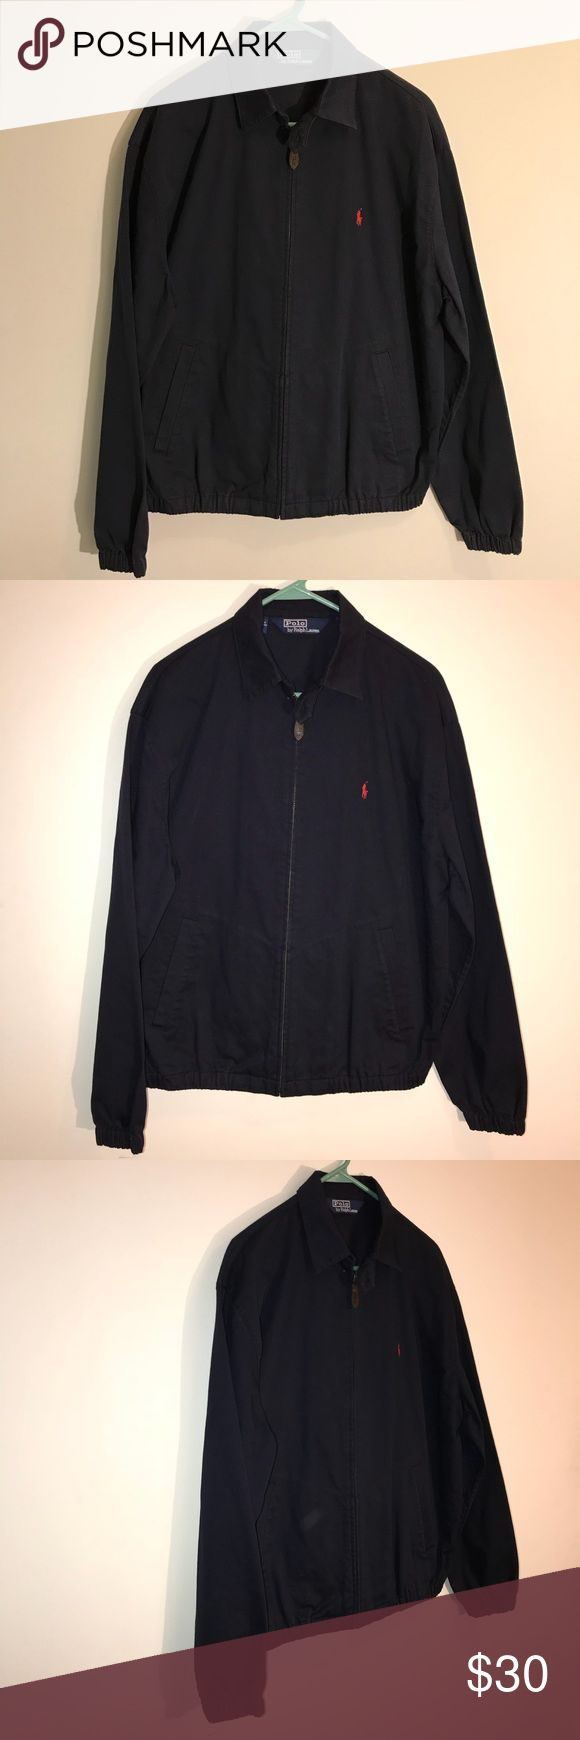 Men's Ralph Lauren Polo Jacket HELLO EVERYONE, I AM OFFERING AN AWESOME  Navy Blue Ralph Lauren Polo Jacket    This Navy Blue Ralph Lauren Polo Jacket is In Great Condition. Navy blue with red Polo Pony emblem.  Size Tag says it's a Medium    Please SEE THE PICTURES FOR MORE DETAIL       Thanks For looking    ALL ITEMS WILL BE PACKED SECURELY Polo by Ralph Lauren Jackets & Coats